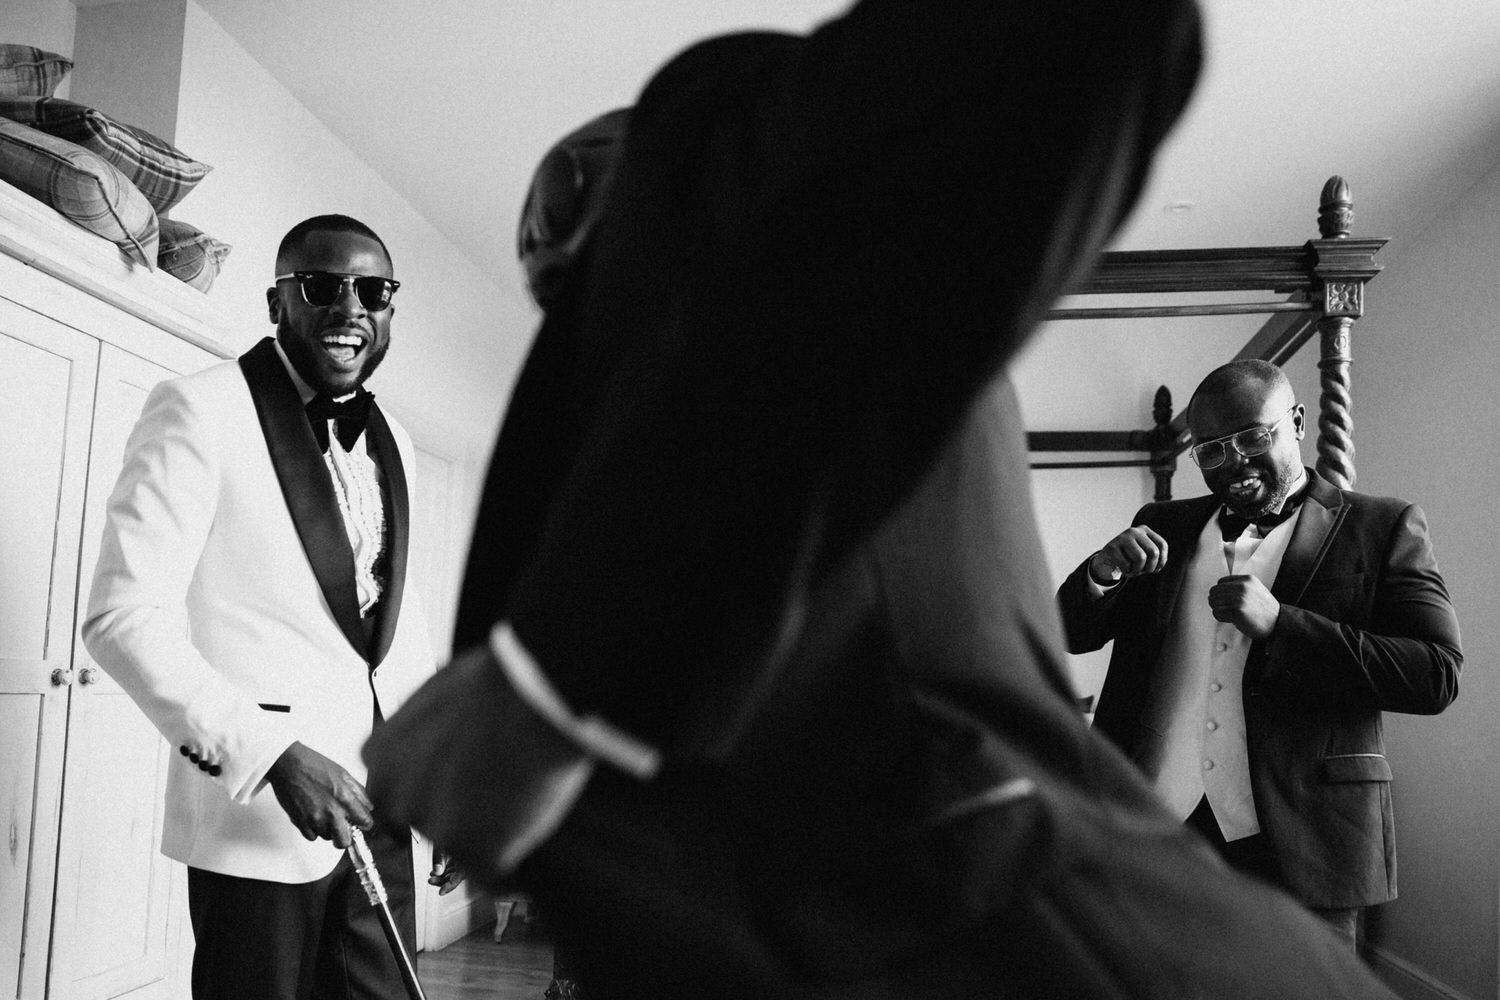 The groomsmen laugh and dance in their hotel room